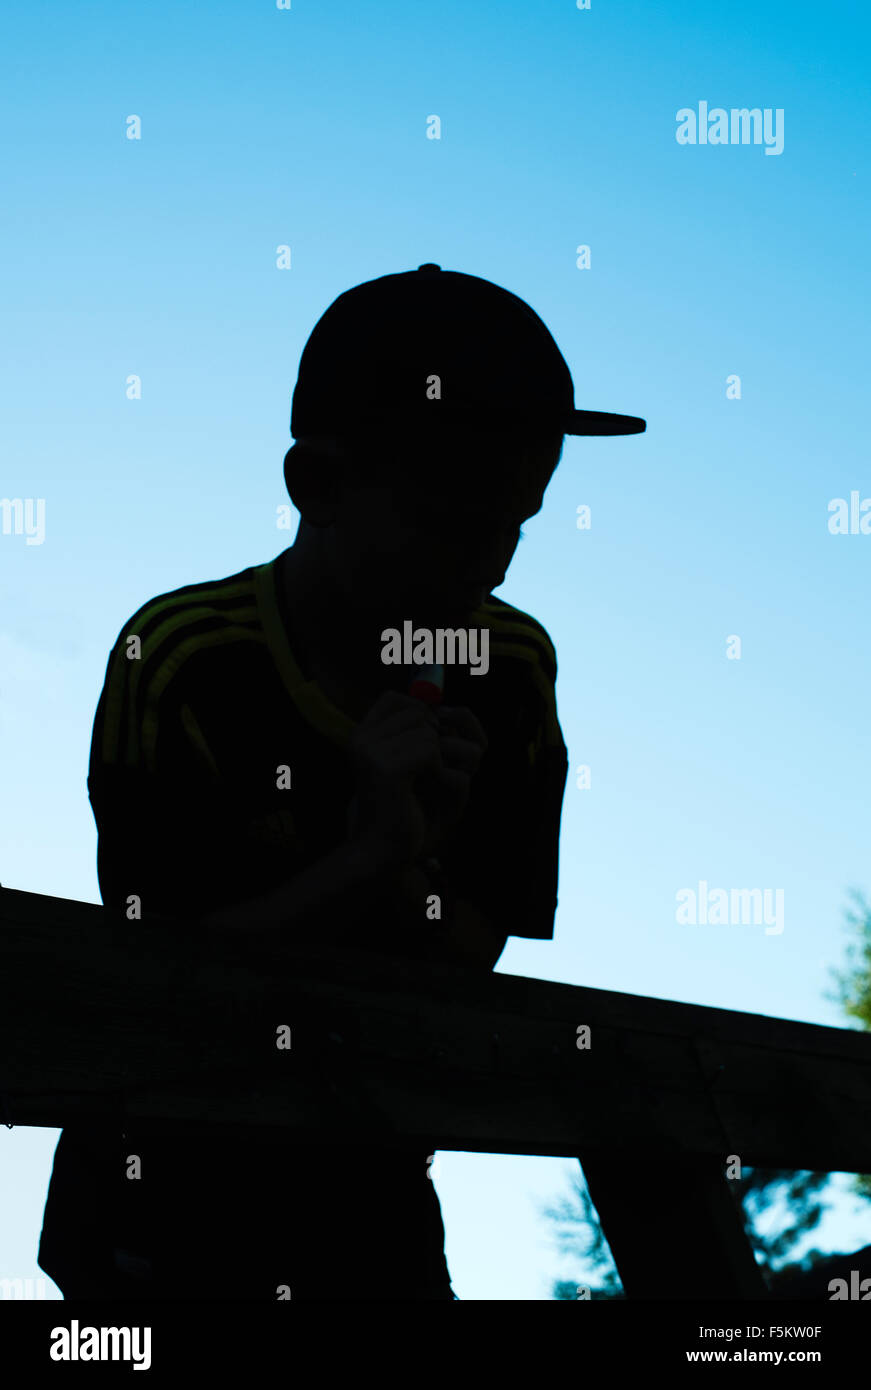 Sweden, Silhouette view of boy (12-13) - Stock Image